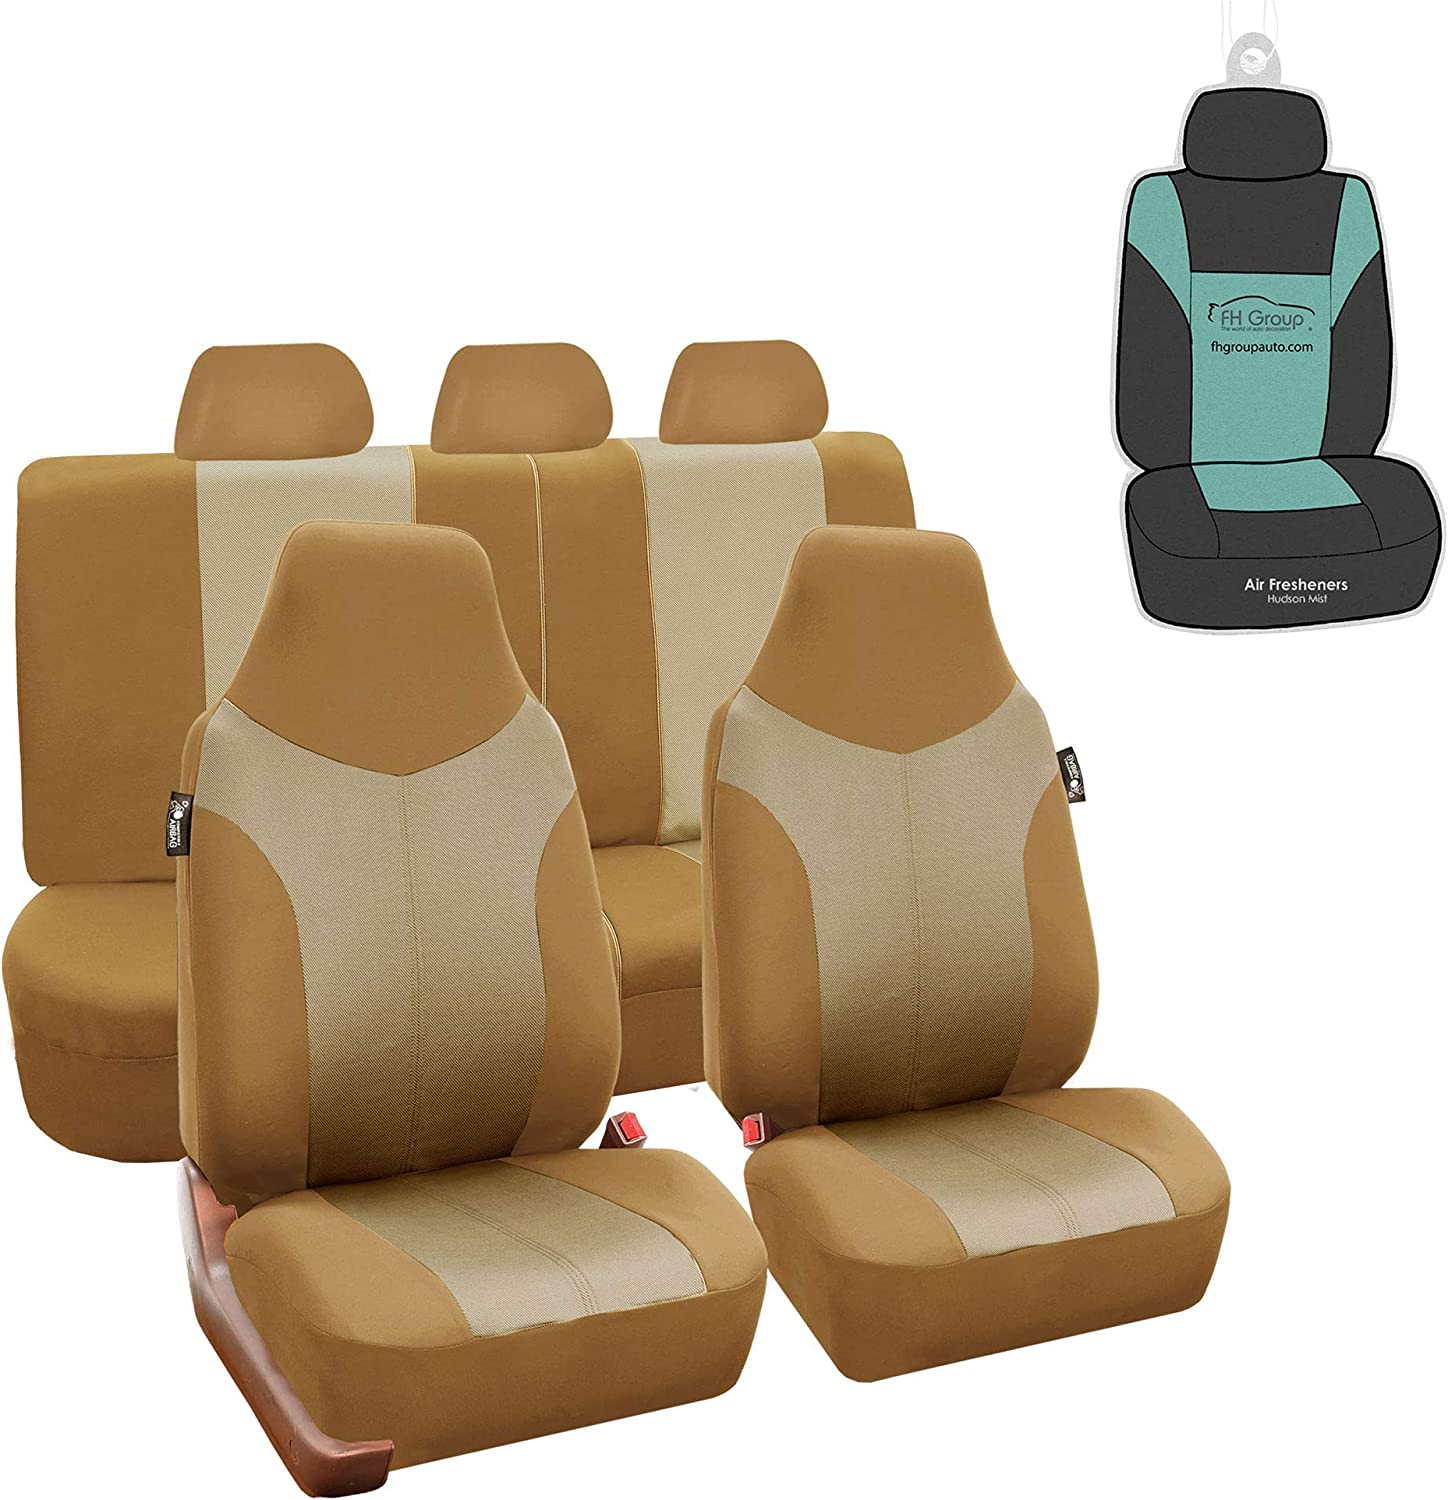 FH Group FB101115 Supreme Twill Seat Covers (Beige) Full Set with Gift - Universal Fit for Cars Trucks and SUVs